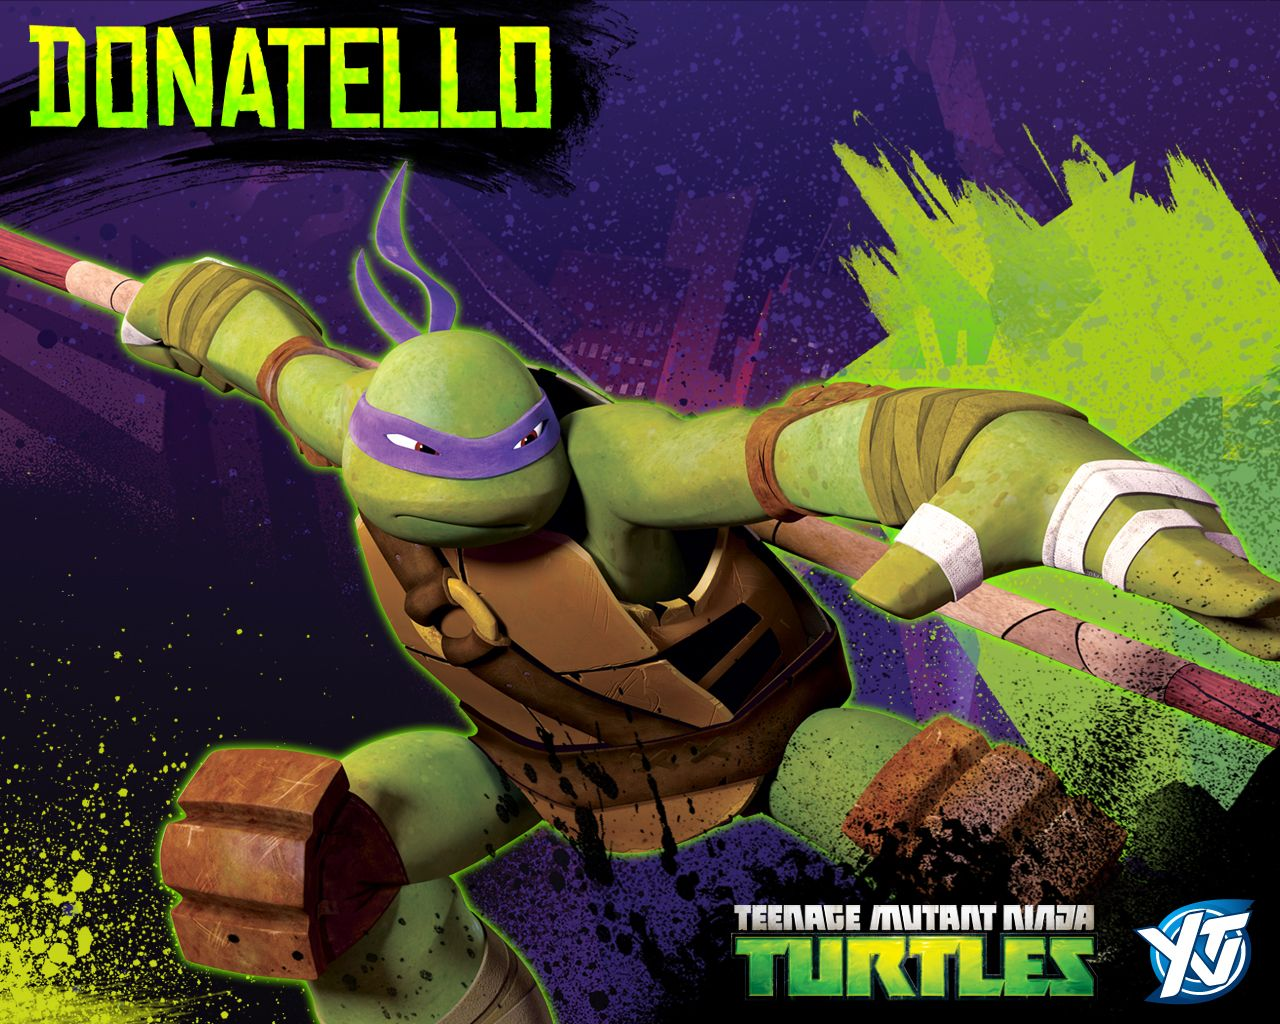 wallpaper do donatello tartarugas ninja terceiro